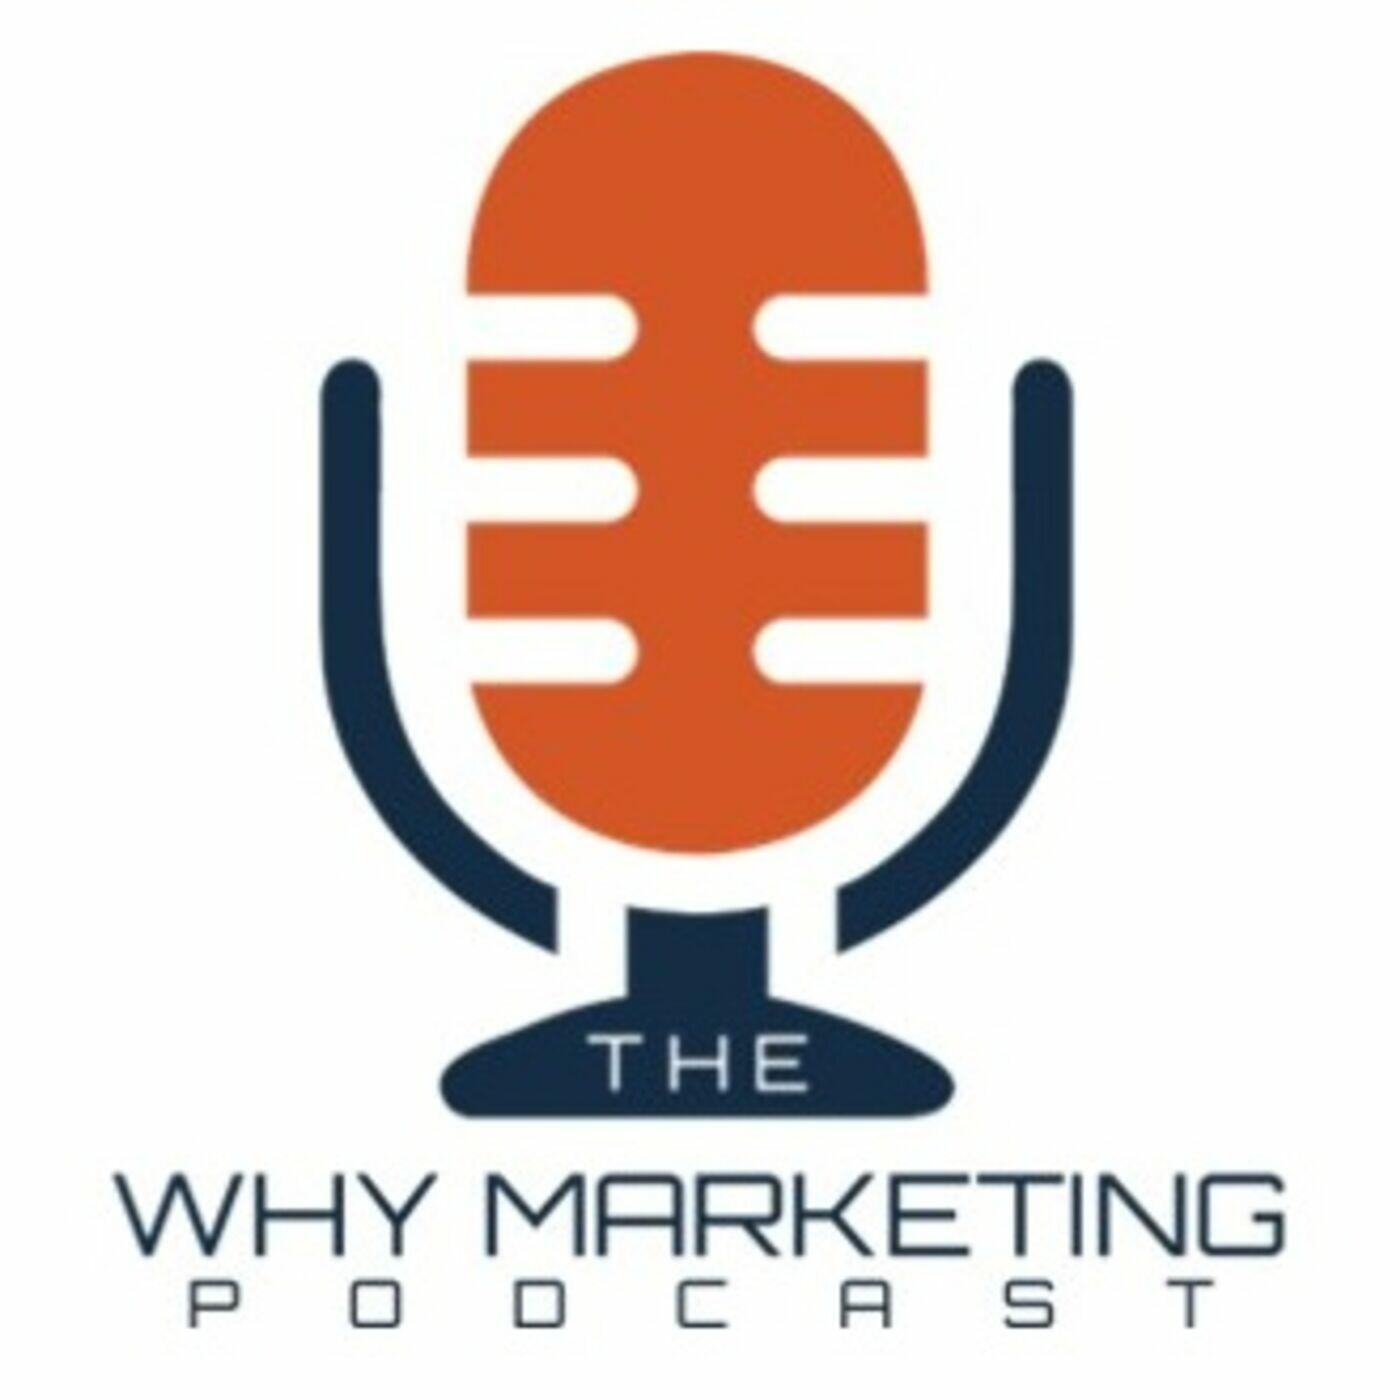 The WHY MARKETING Podcast